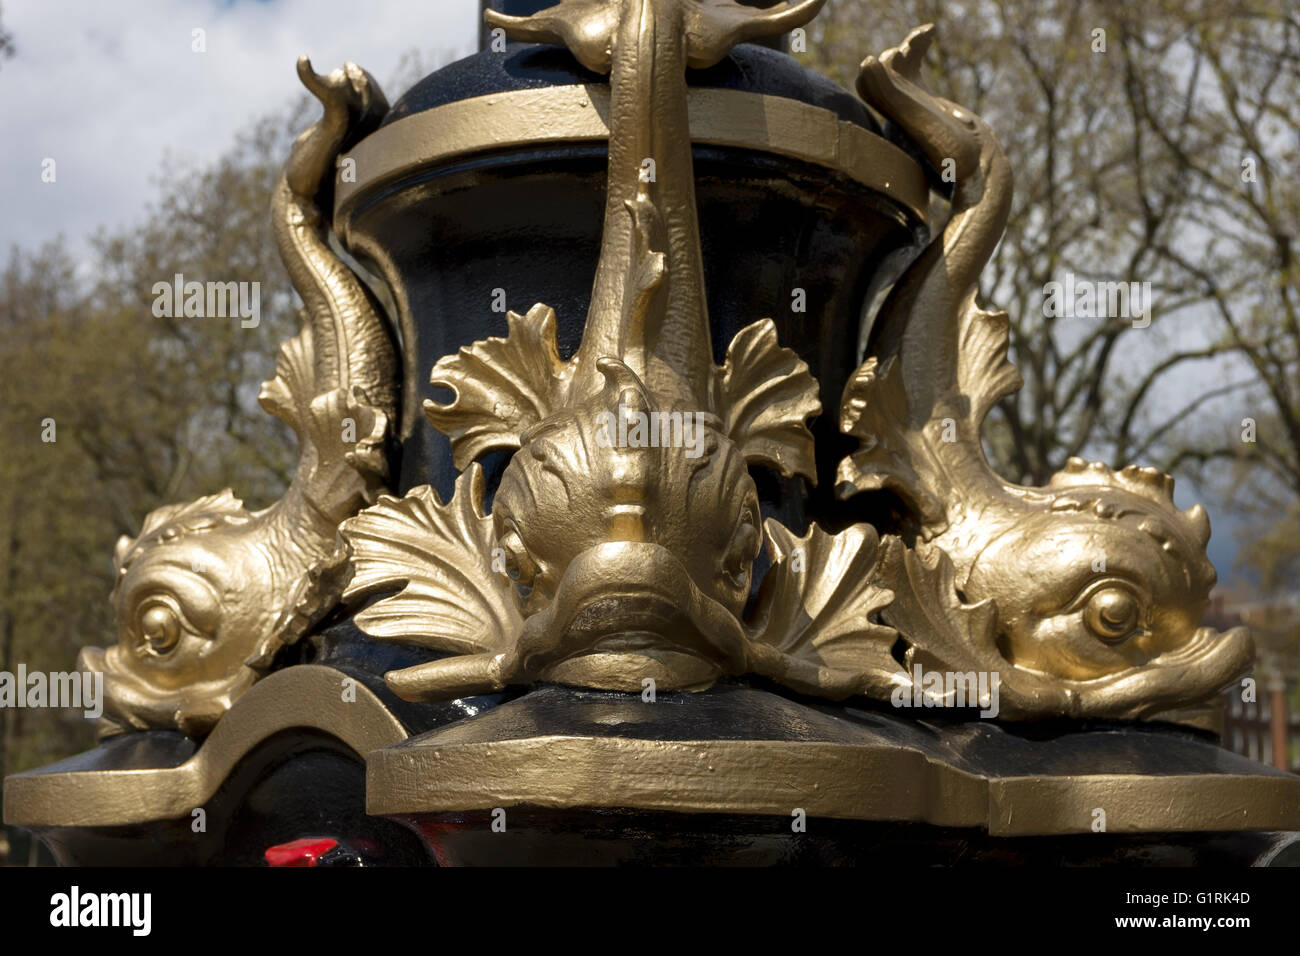 Golden fish detail on a street light on Victoria Embankment in London UK - Stock Image